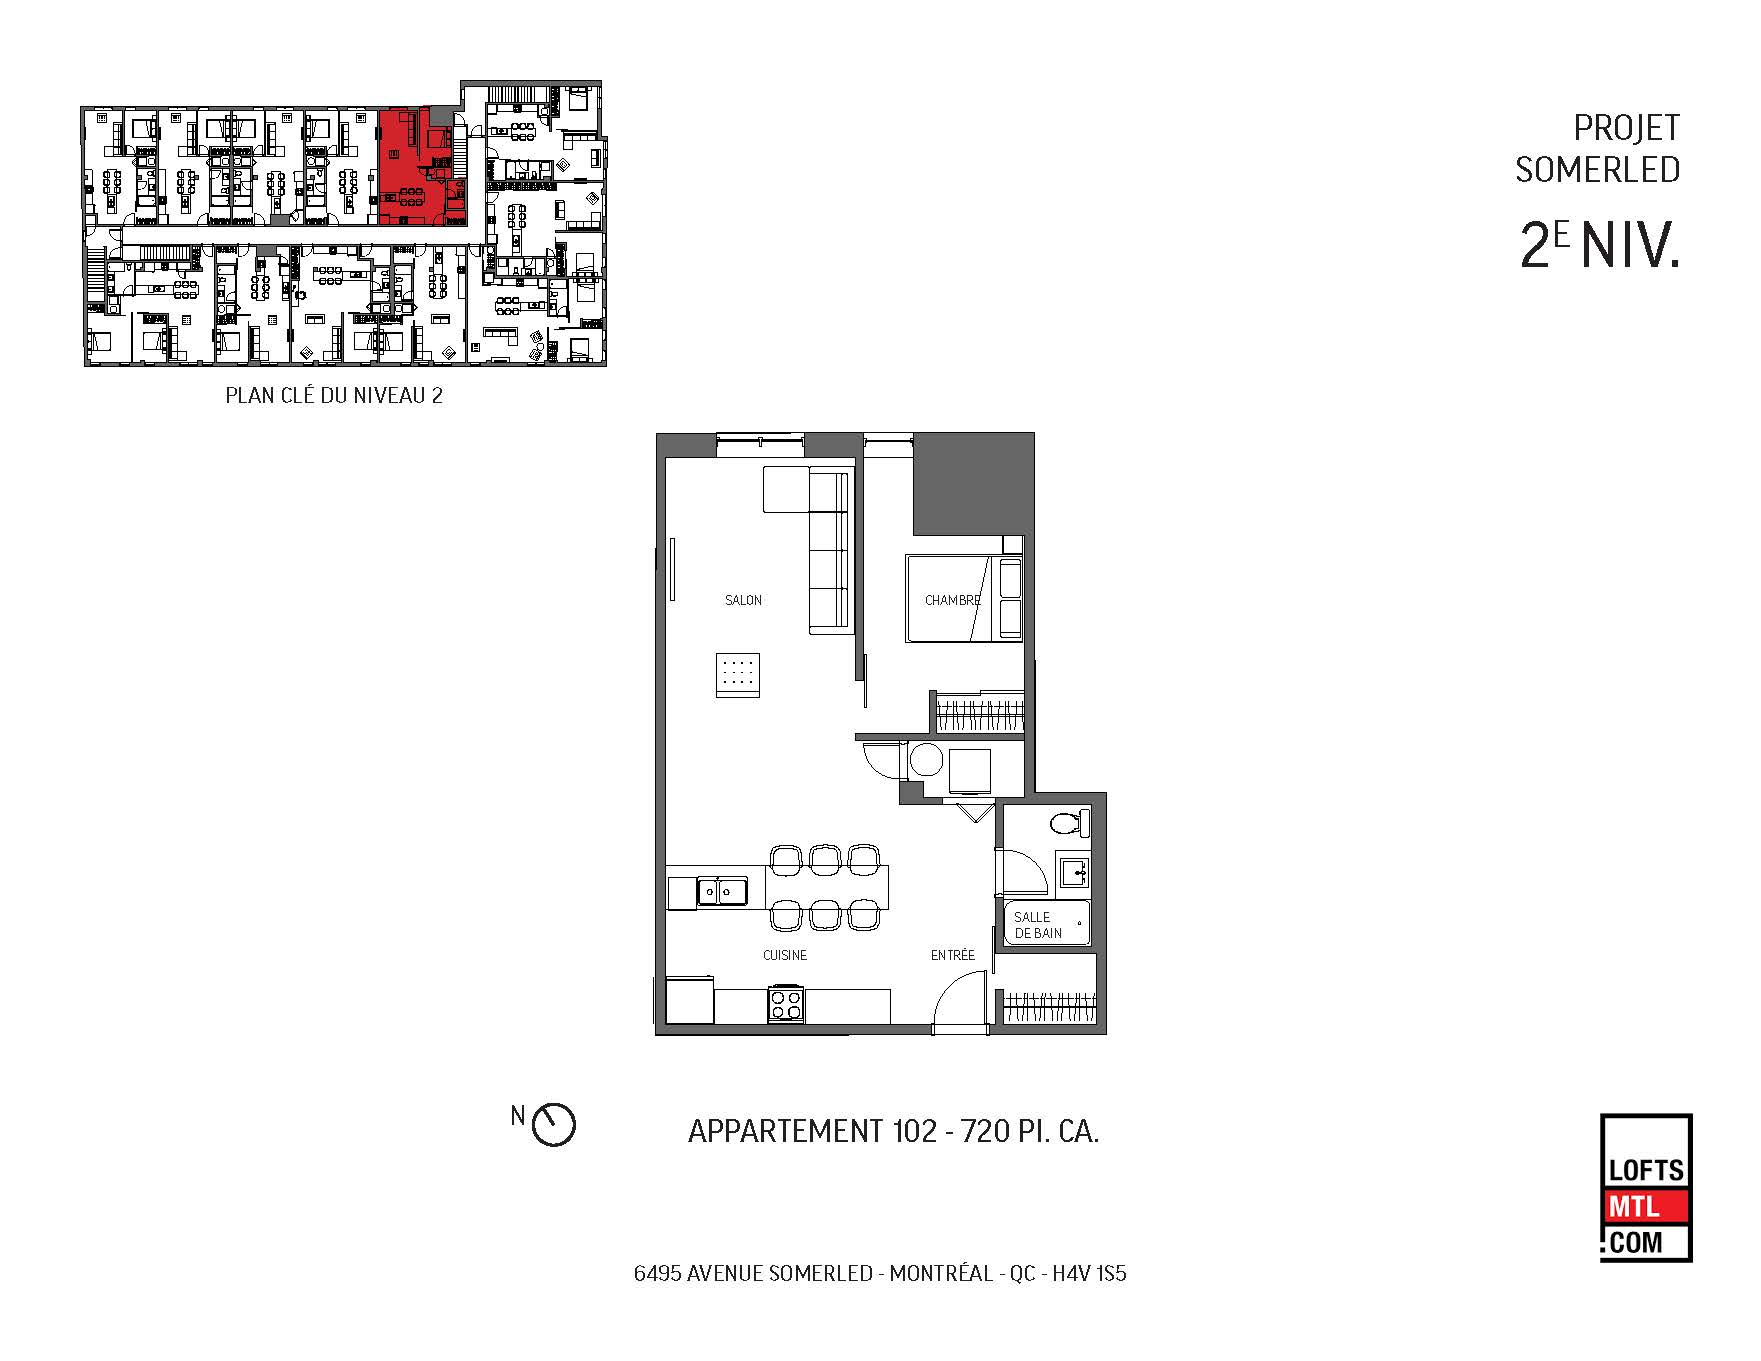 Plans appartements vectoriel Somerled_Page_02.jpg